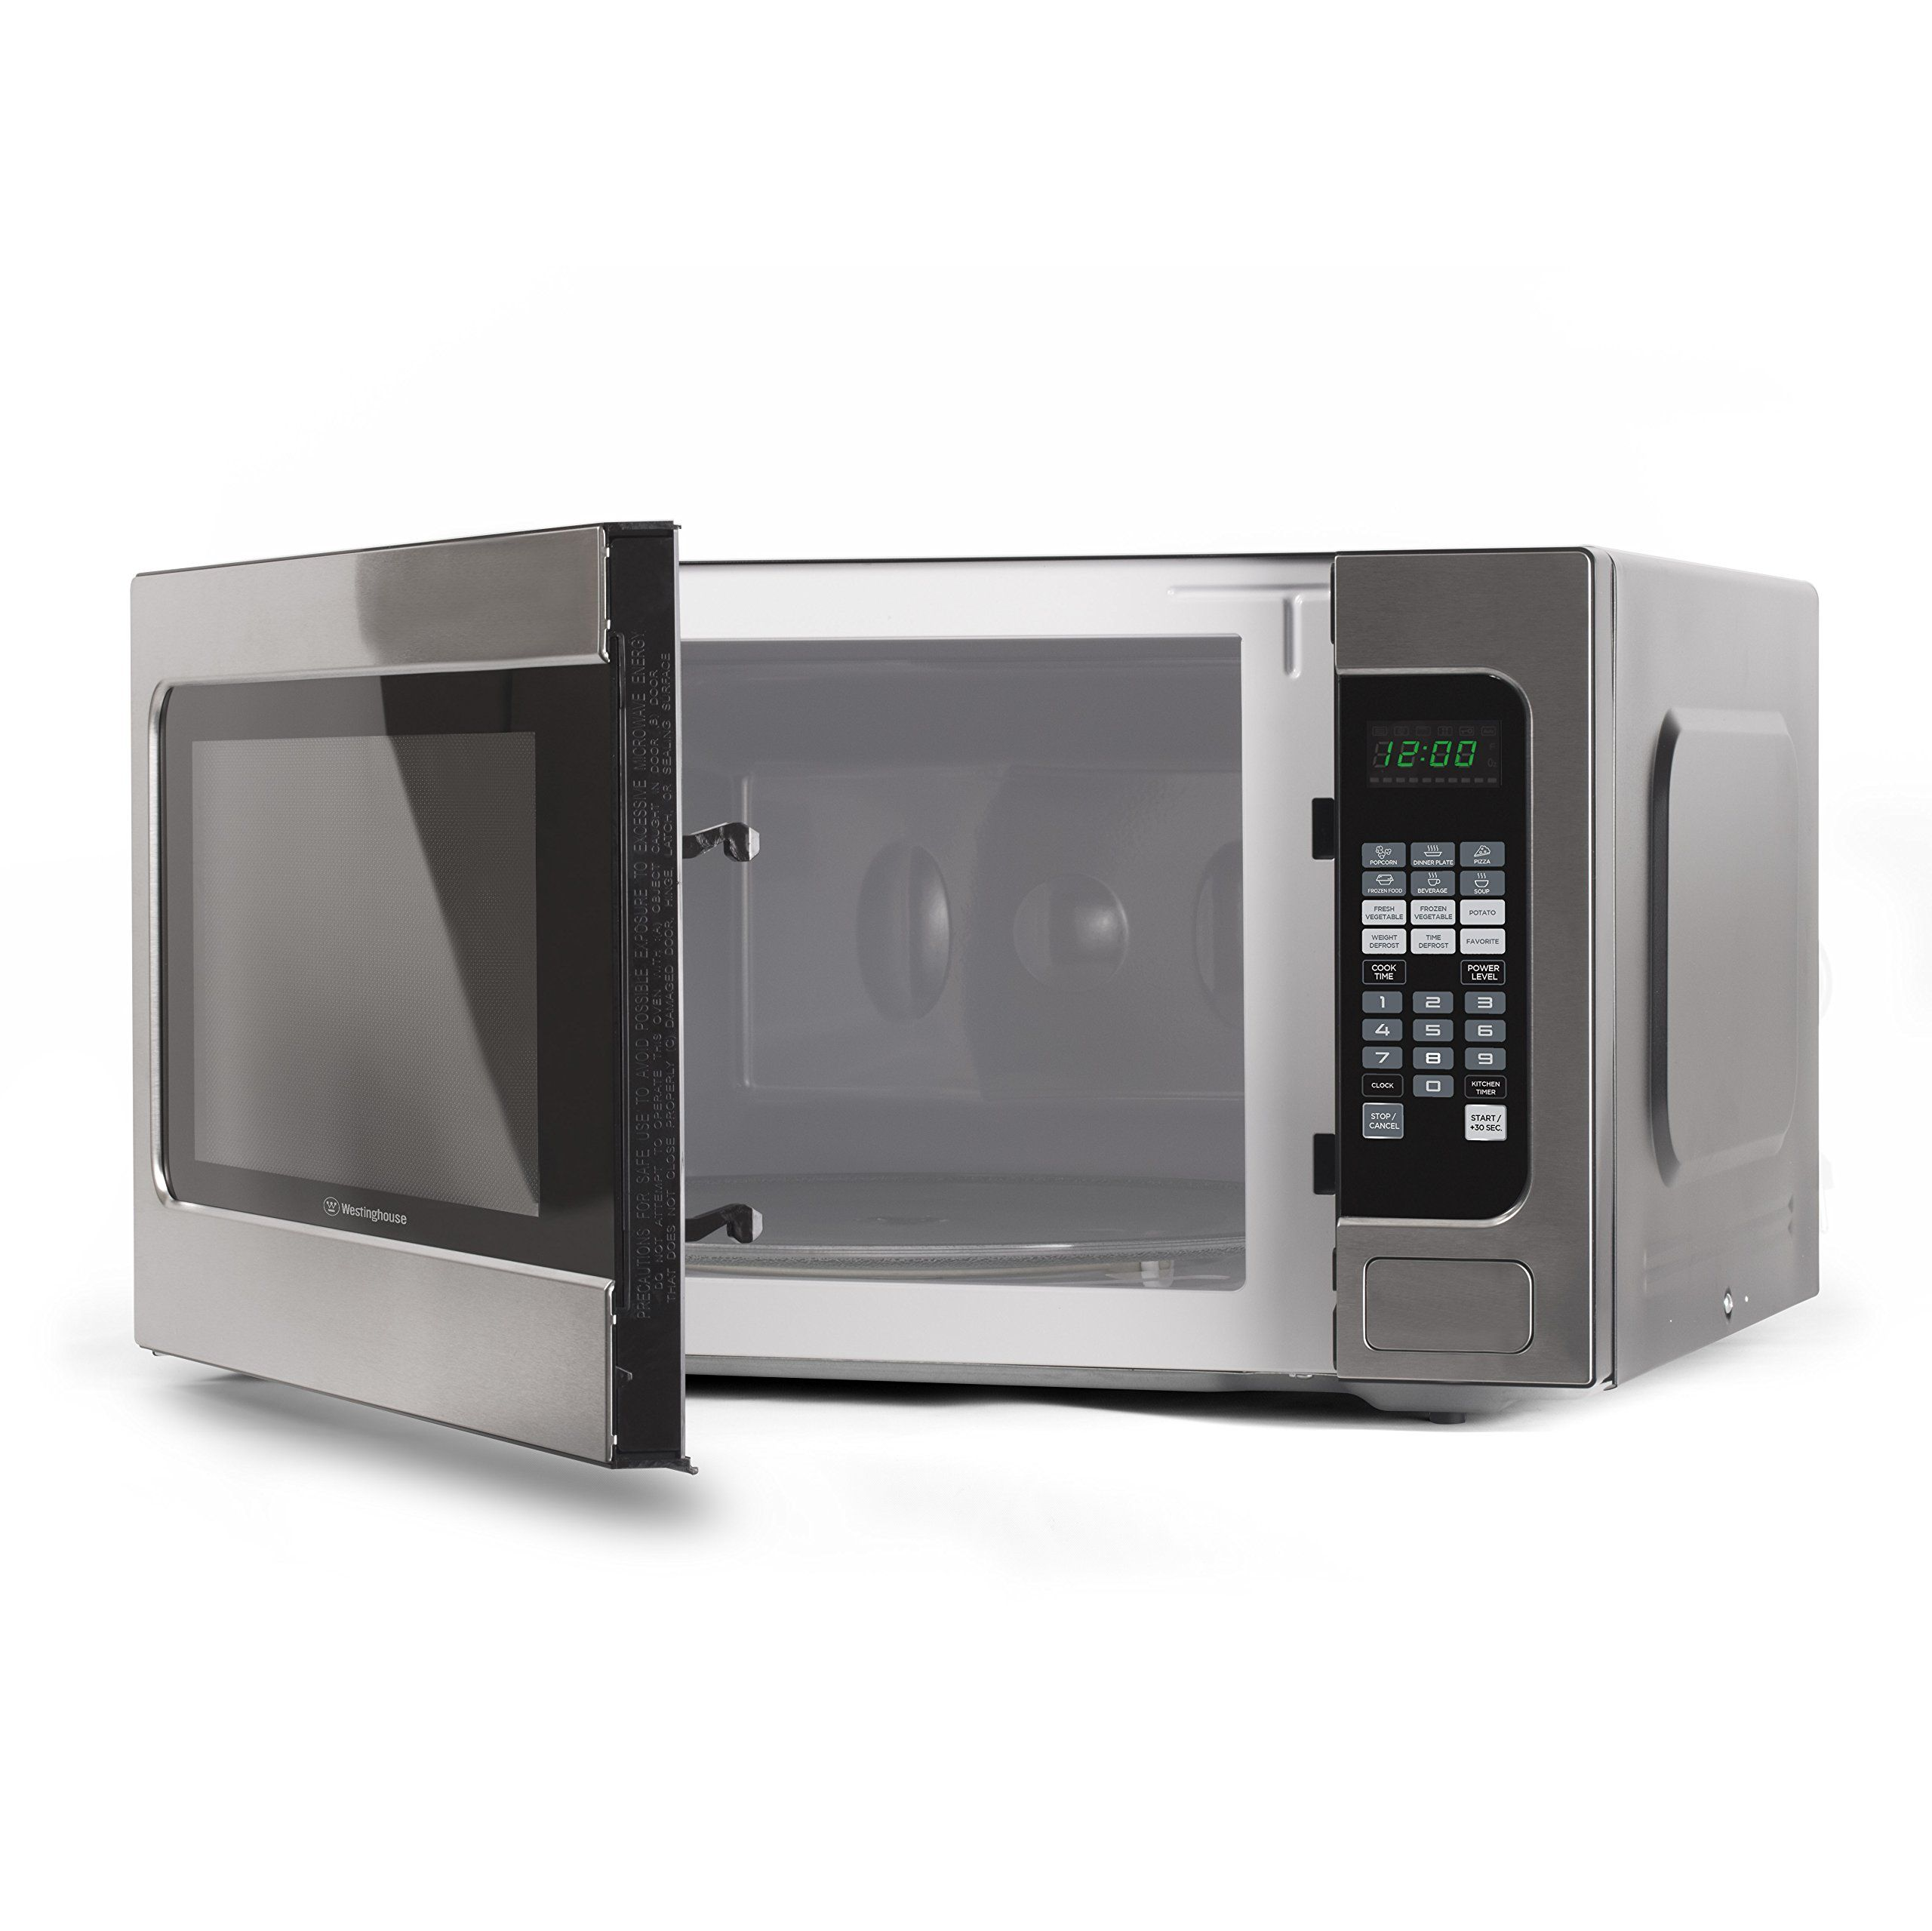 Shop Whirlpool 1 6 Cu Ft 1200 Watt Countertop Microwave Stainless Steel At Lowes Com Stainless Microwave Stainless Steel Countertops Countertop Microwave Oven